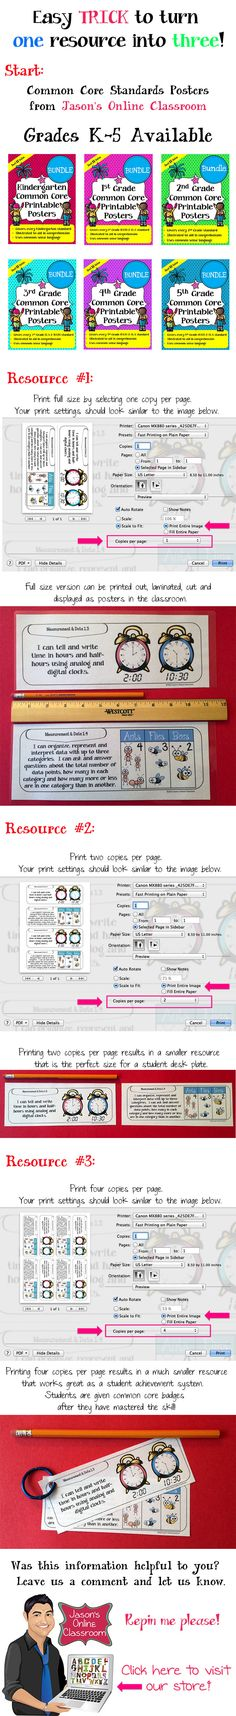 EXPAND (CLICK) THE PIN TO SEE THE FULL VERSION. Use this simple printing trick to make the most out of your resources. Buy one quality resource and turn it into 3 or more resources for your classroom needs ($$)!!  http://www.teacherspayteachers.com/Store/Jasons-Online-Classroom/Category/-Common-Core-Posters-